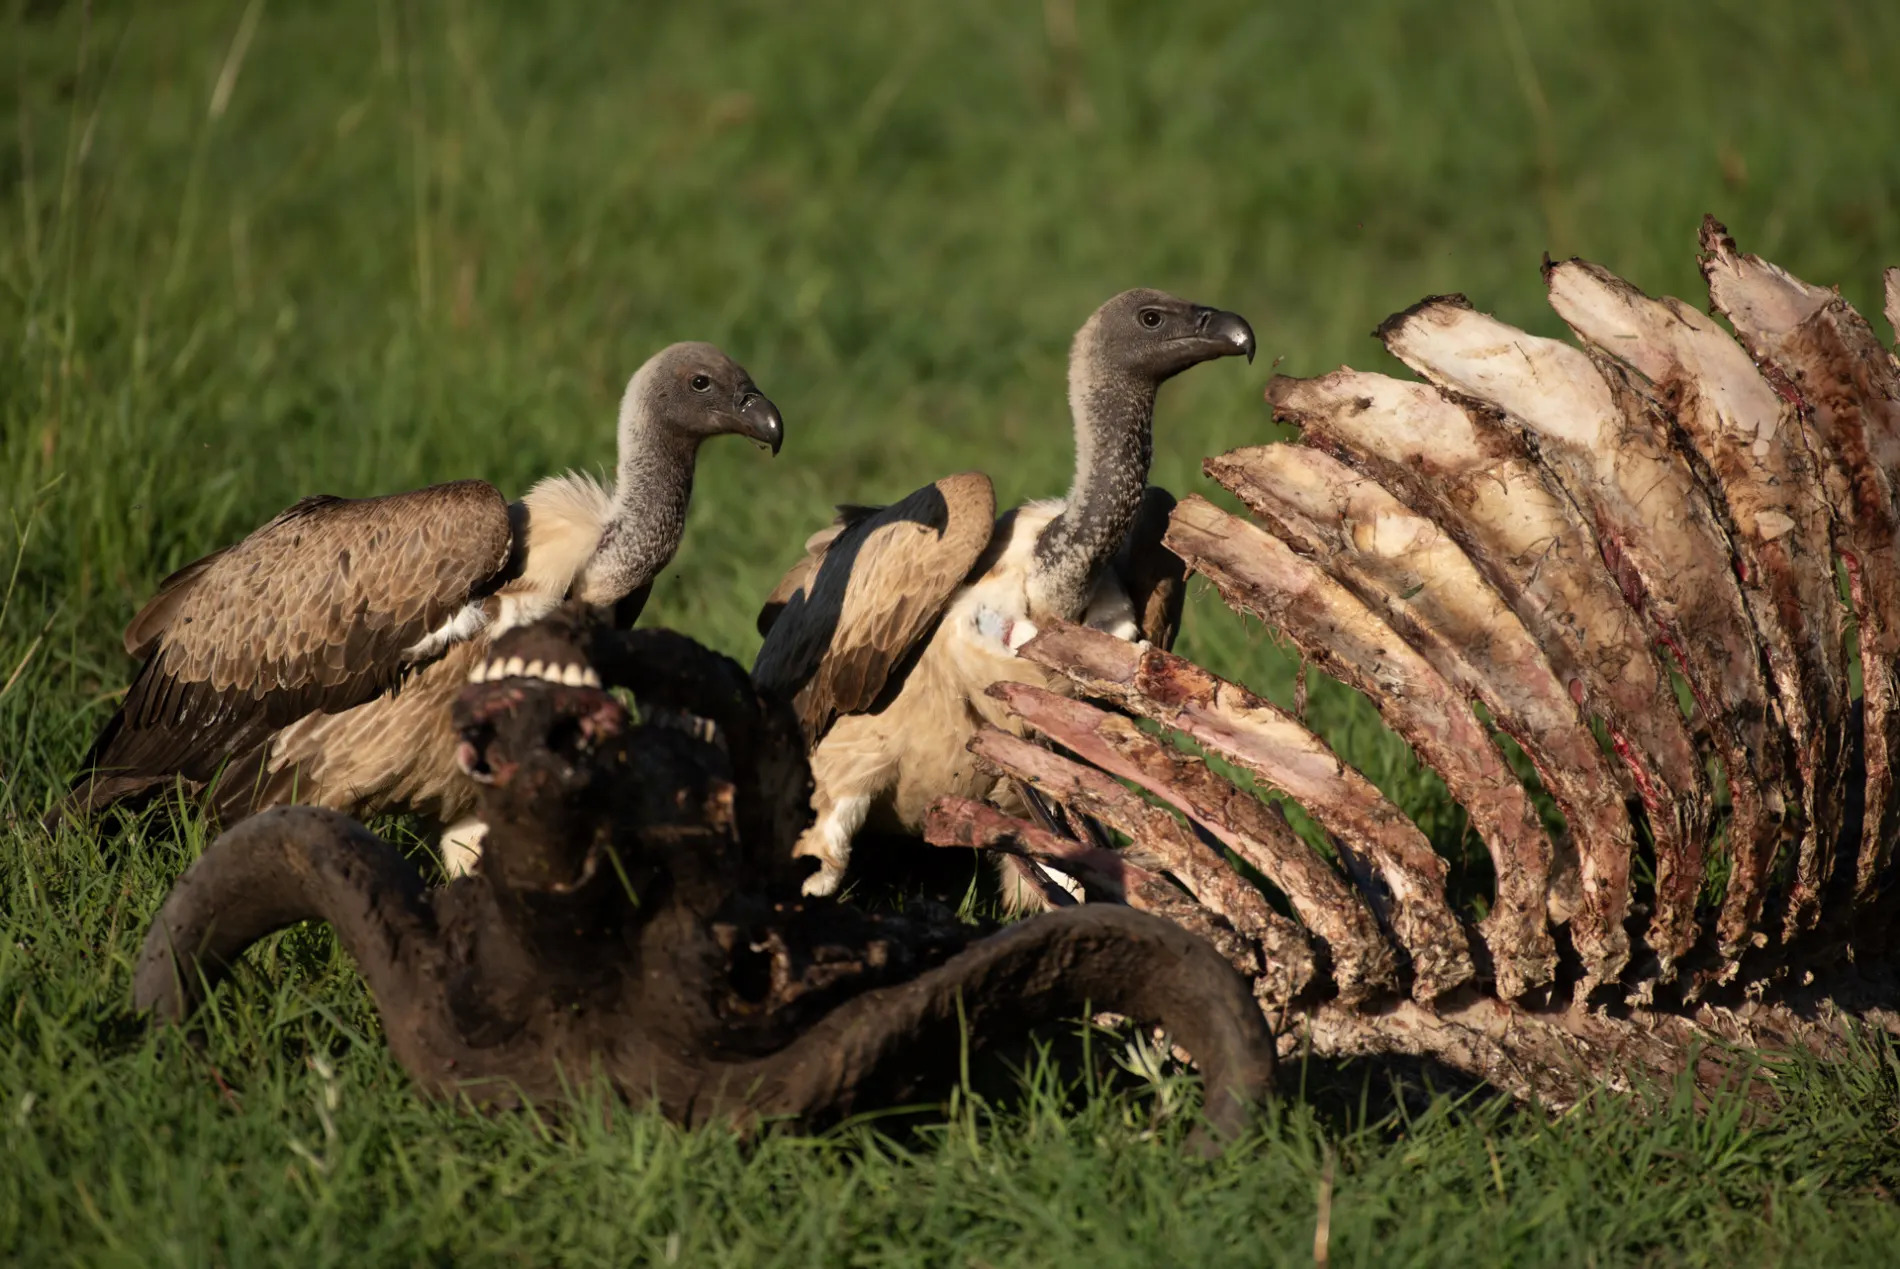 Buffalo and vultures